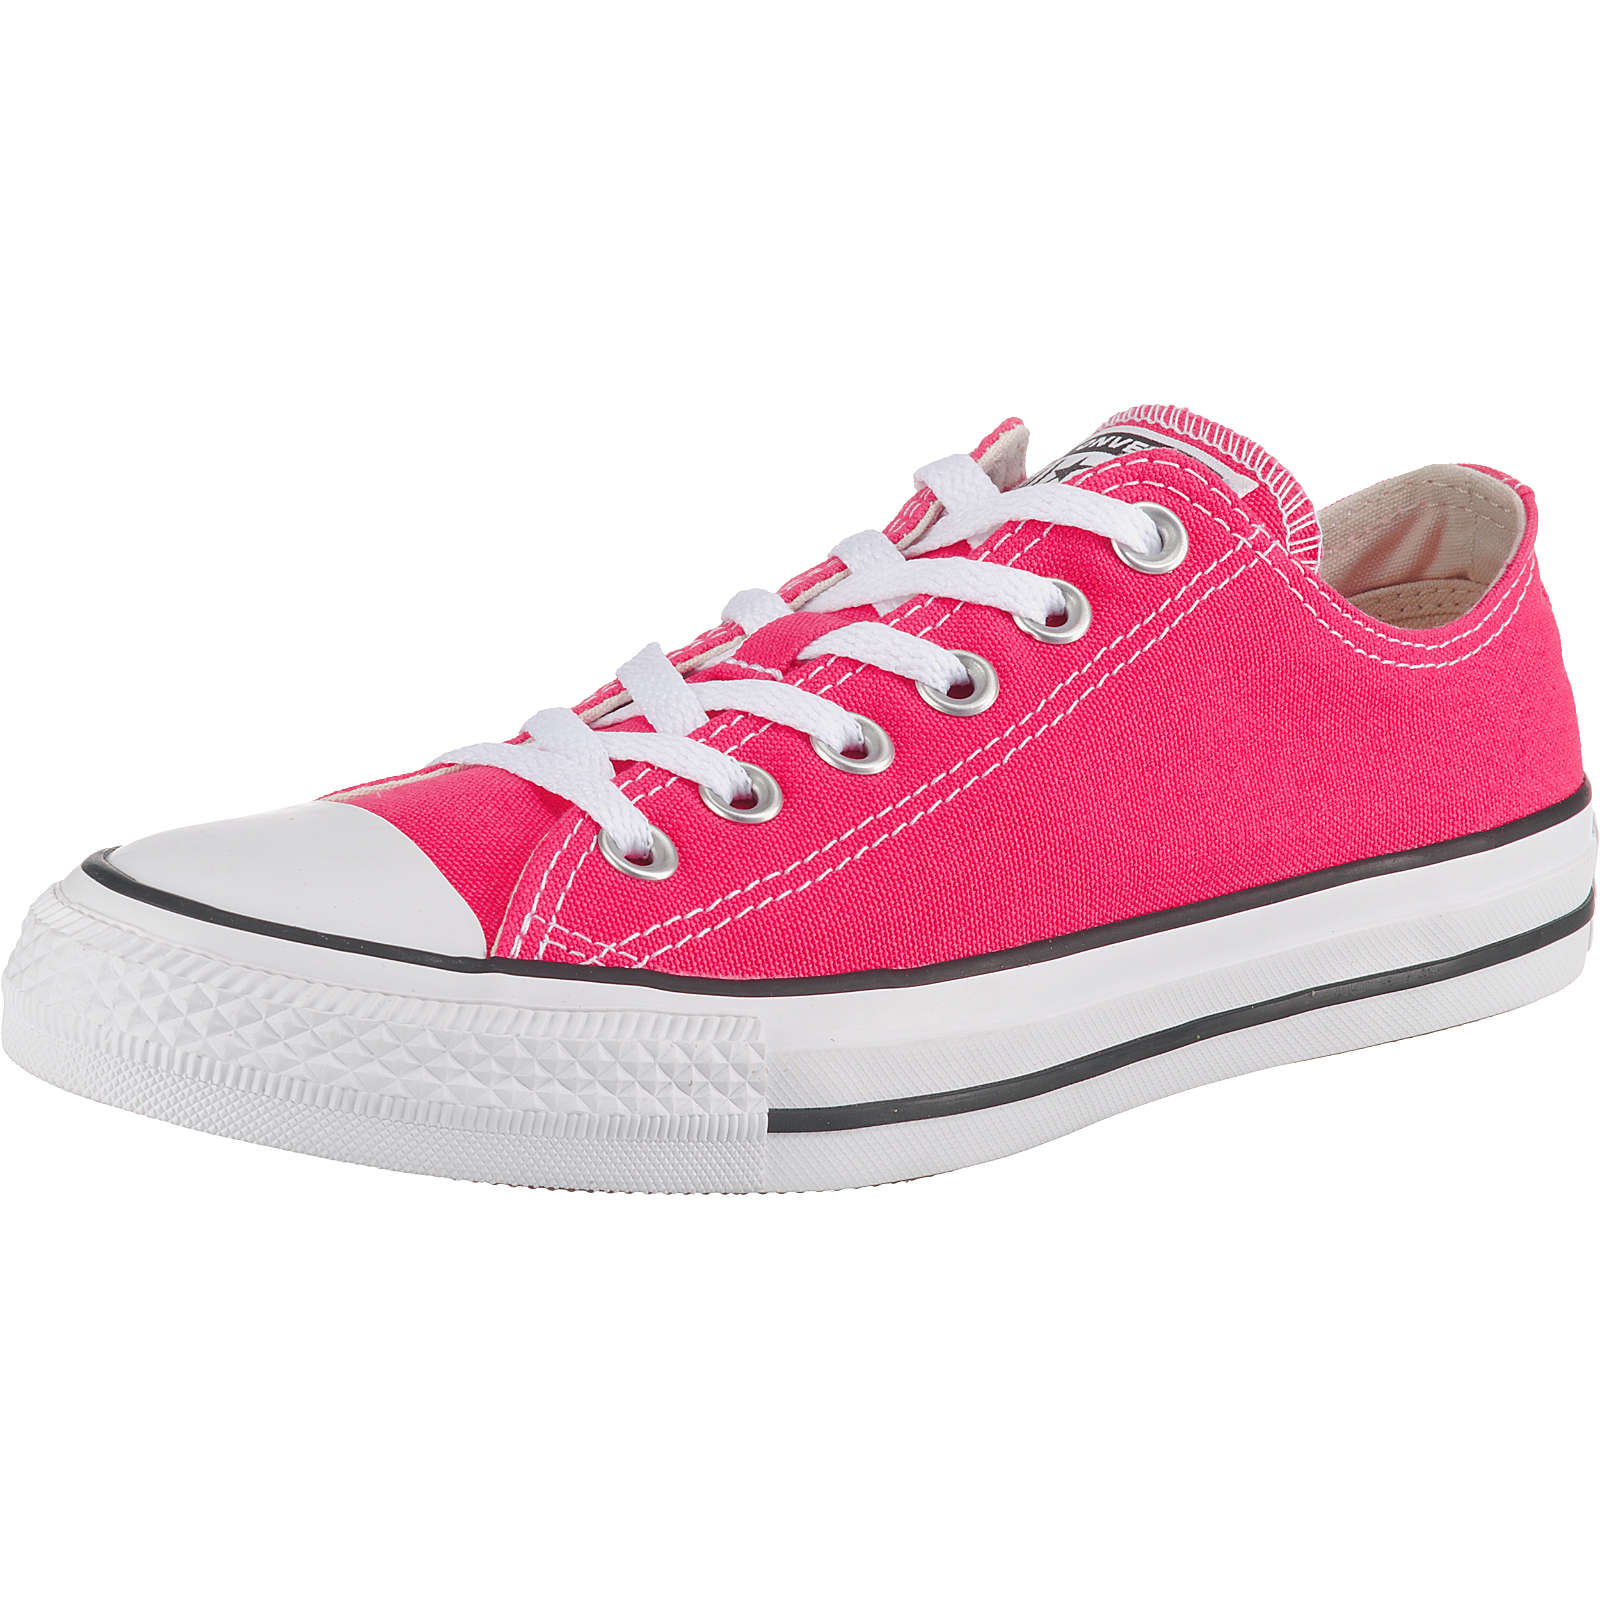 CONVERSE Chuck Taylor All Star Ox Sneakers Low rot Damen Gr. 37